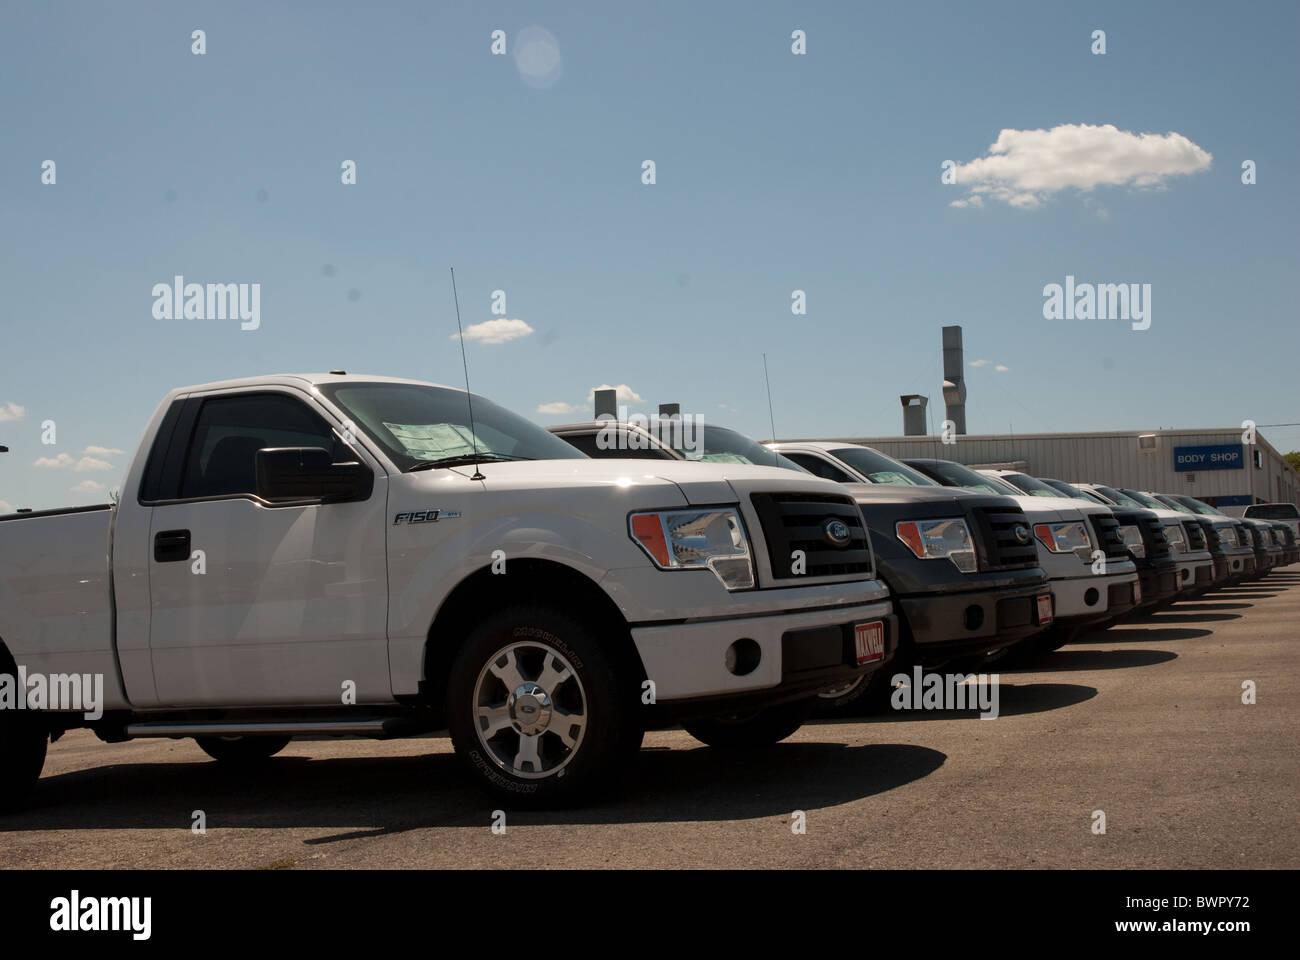 Ford Dealership Austin >> New Trucks Parked In A Row At A Ford Dealership In Austin